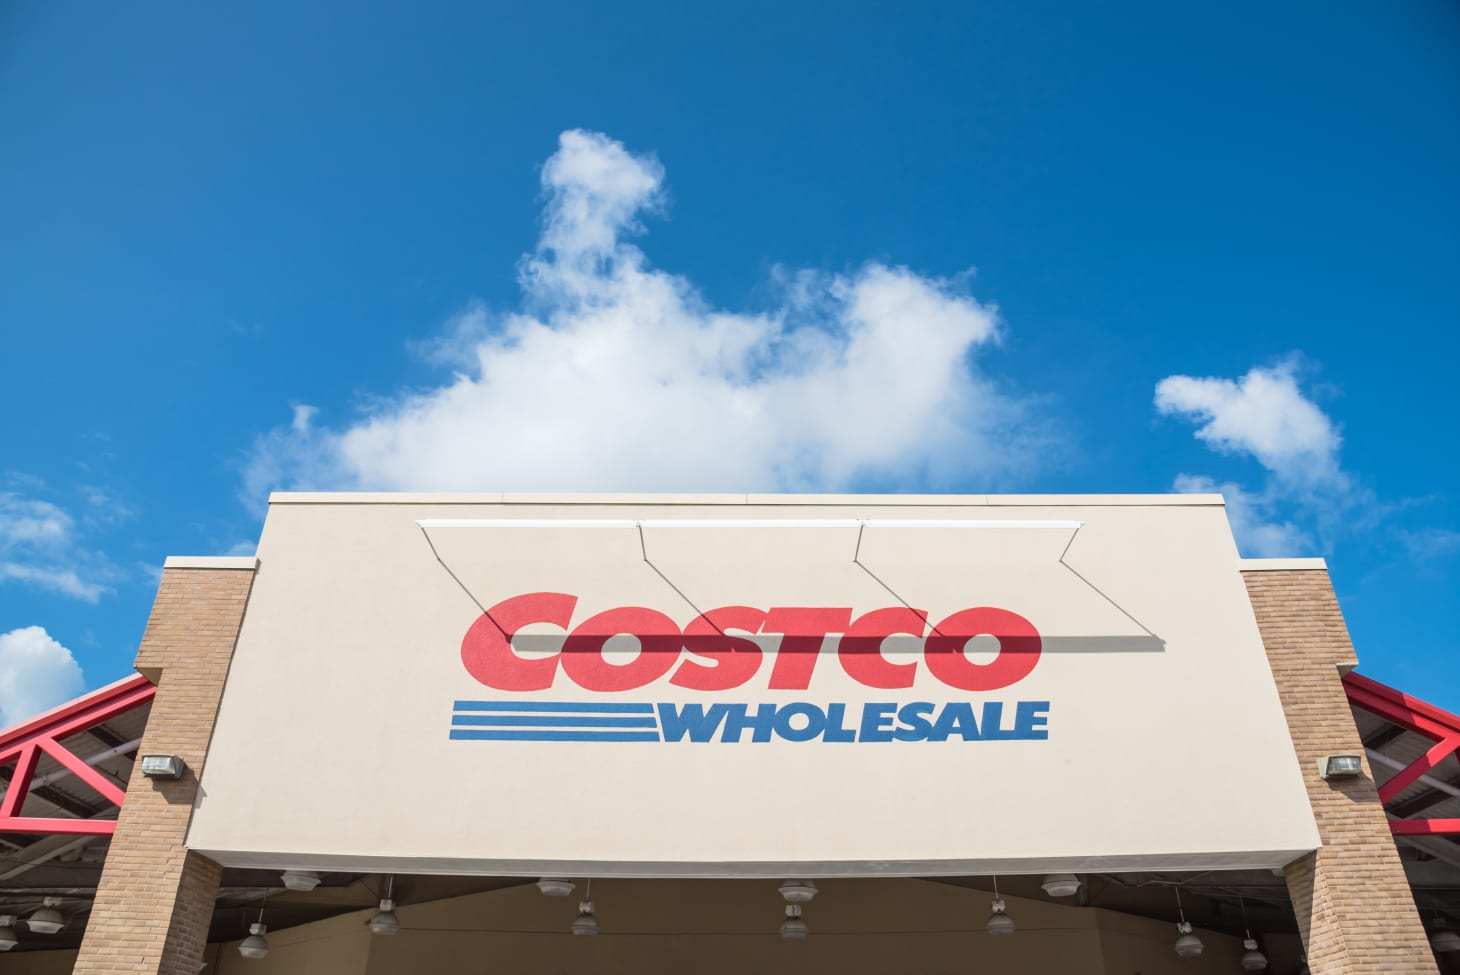 Costco is Selling Universal Studios Tickets at an Amazing Discount